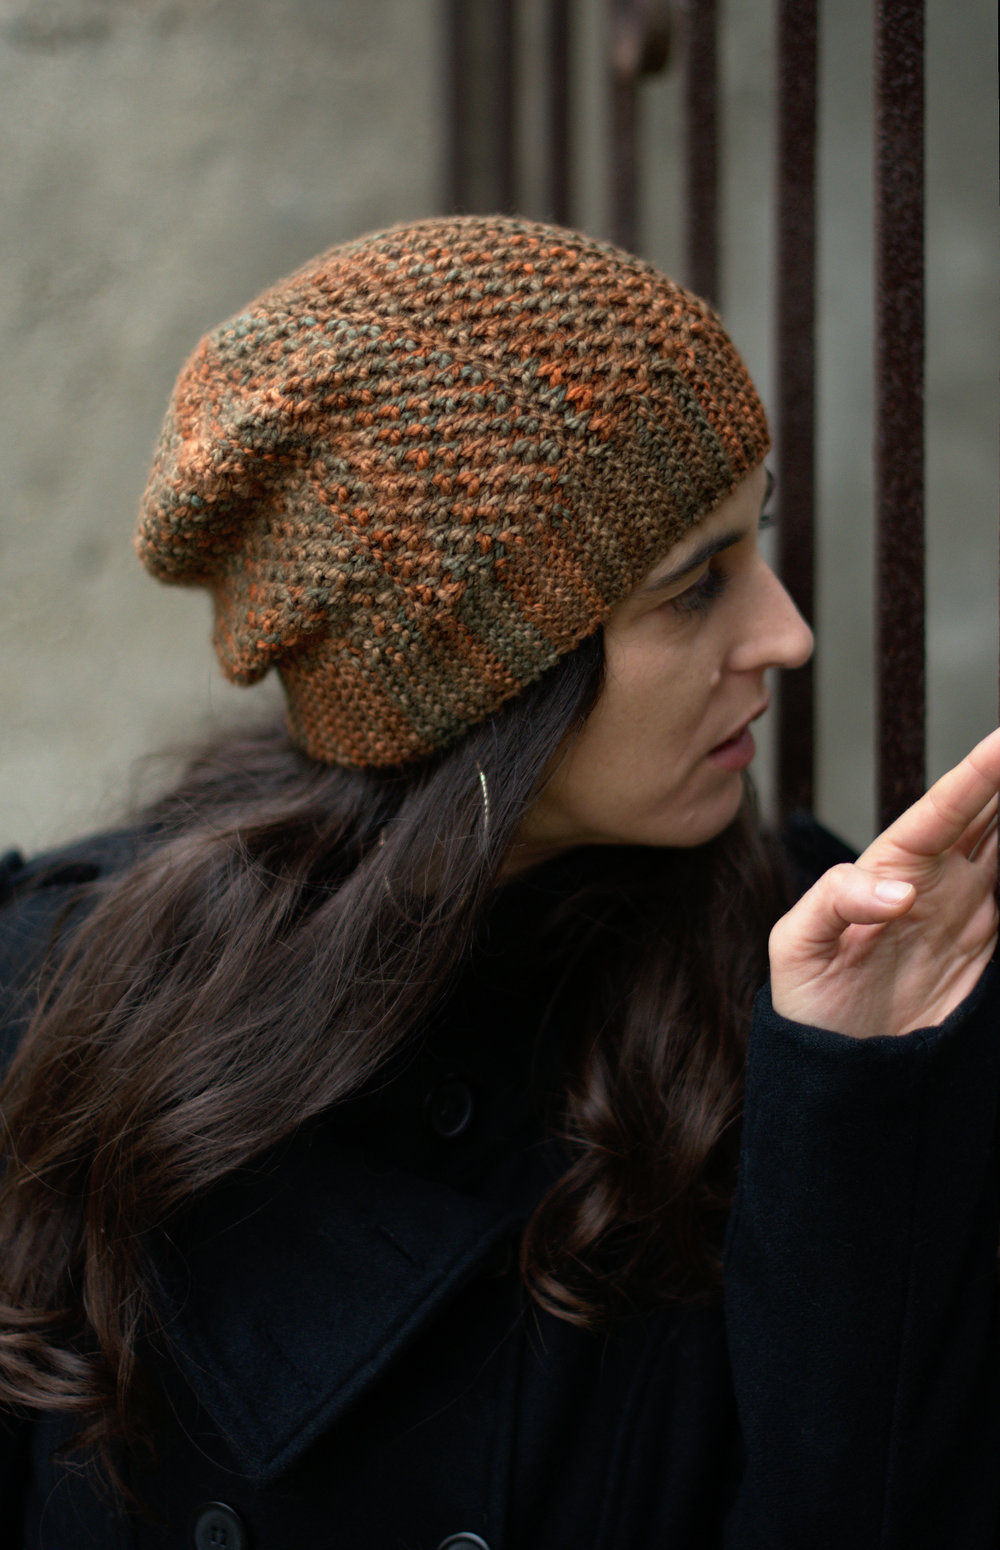 Muratura slouchy sideways knit Hat knitting pattern